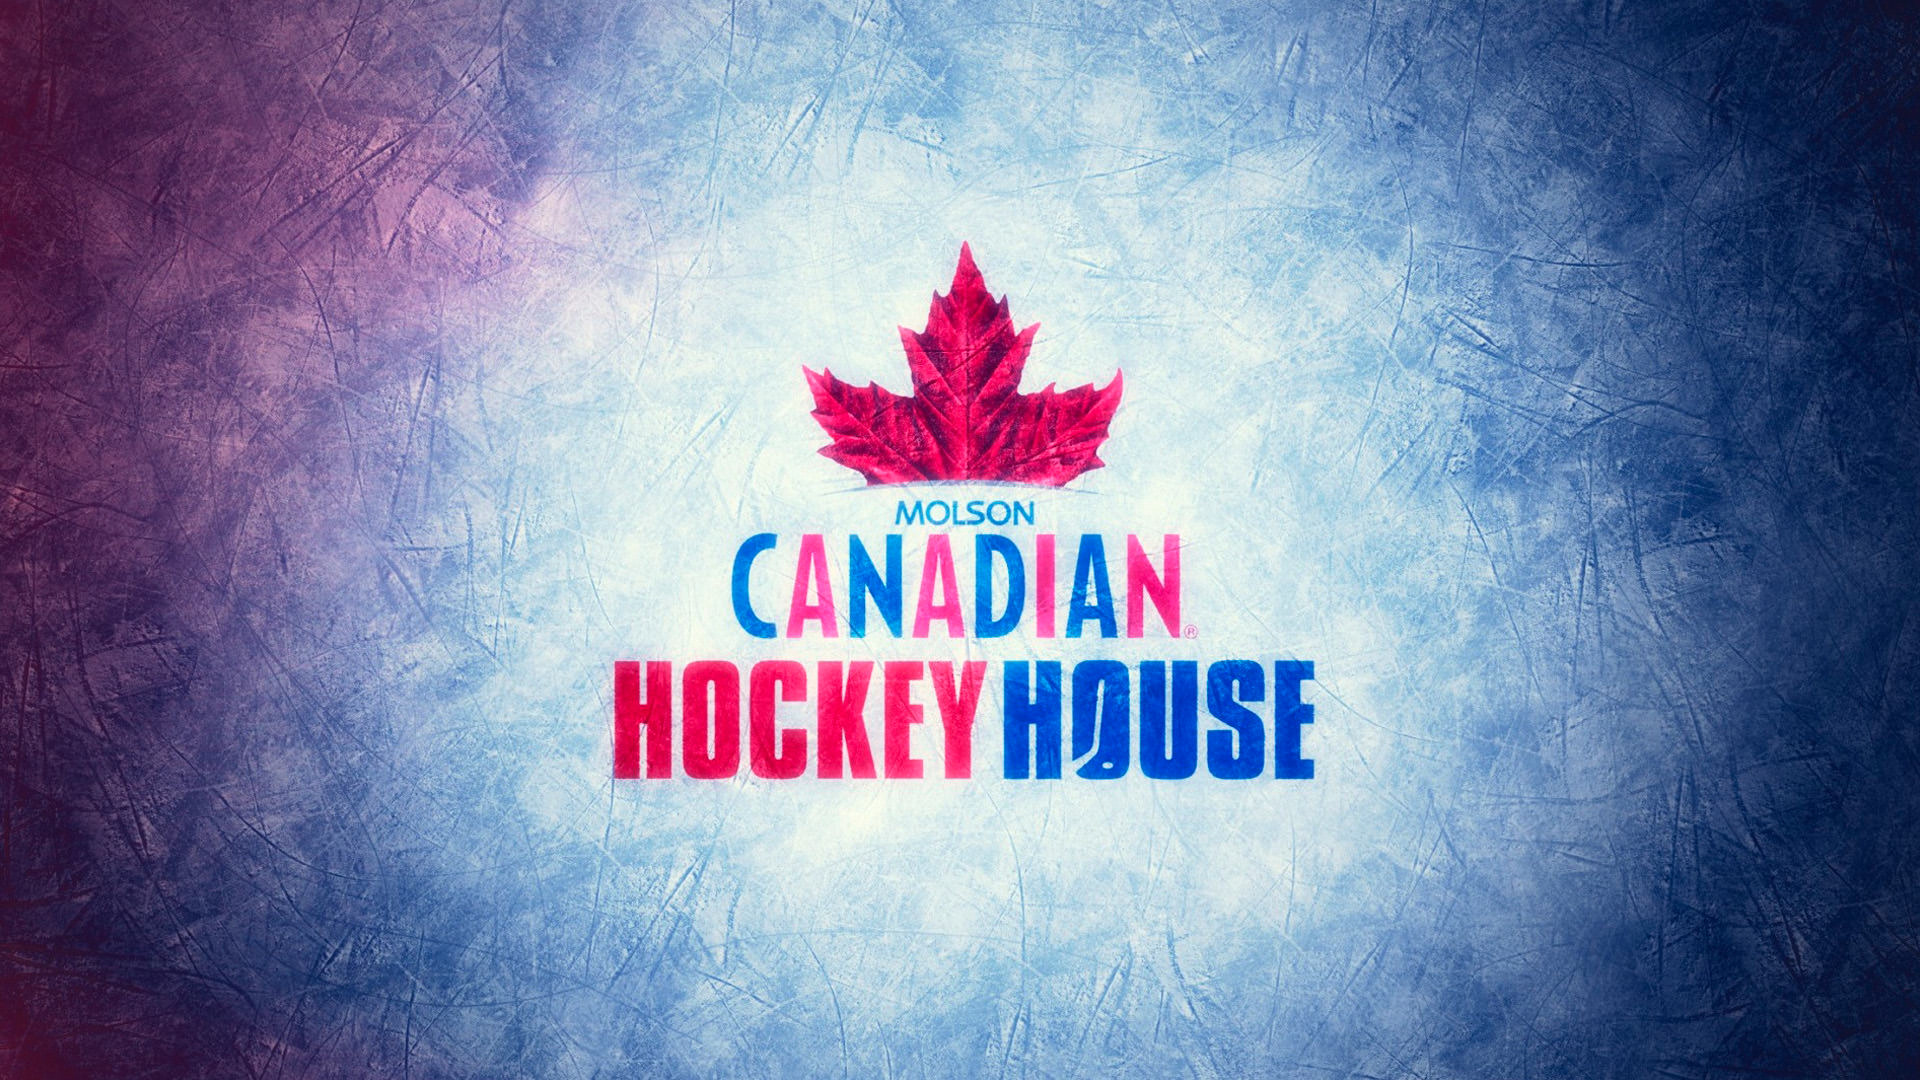 Molson Canadian Hockey House Floor Mural